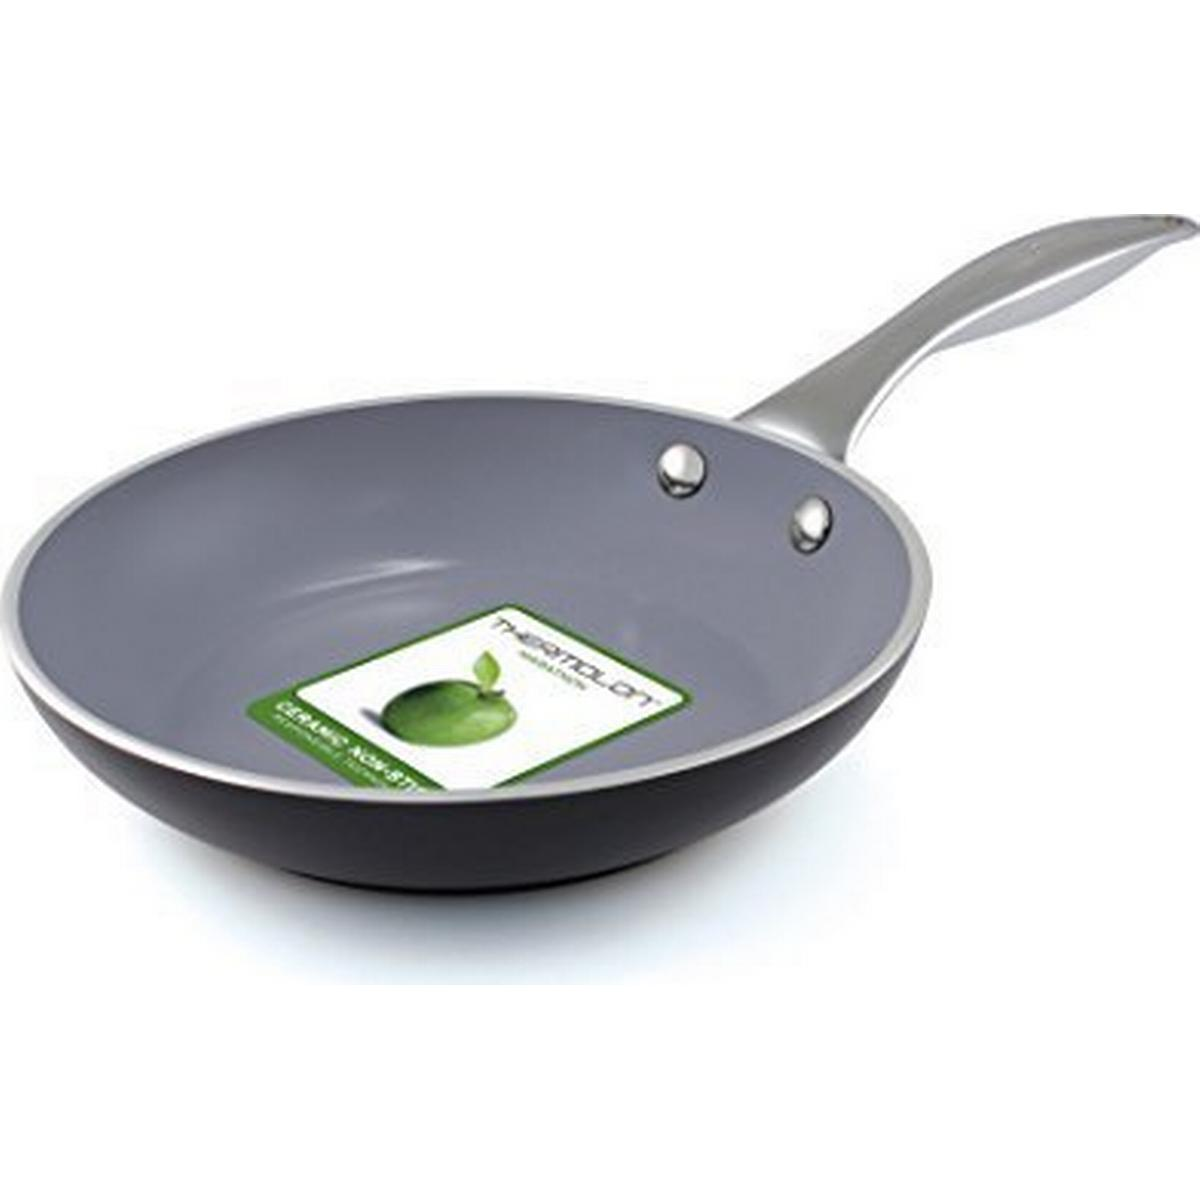 Compare best Greenpan Cookware prices on the market - PriceRunner